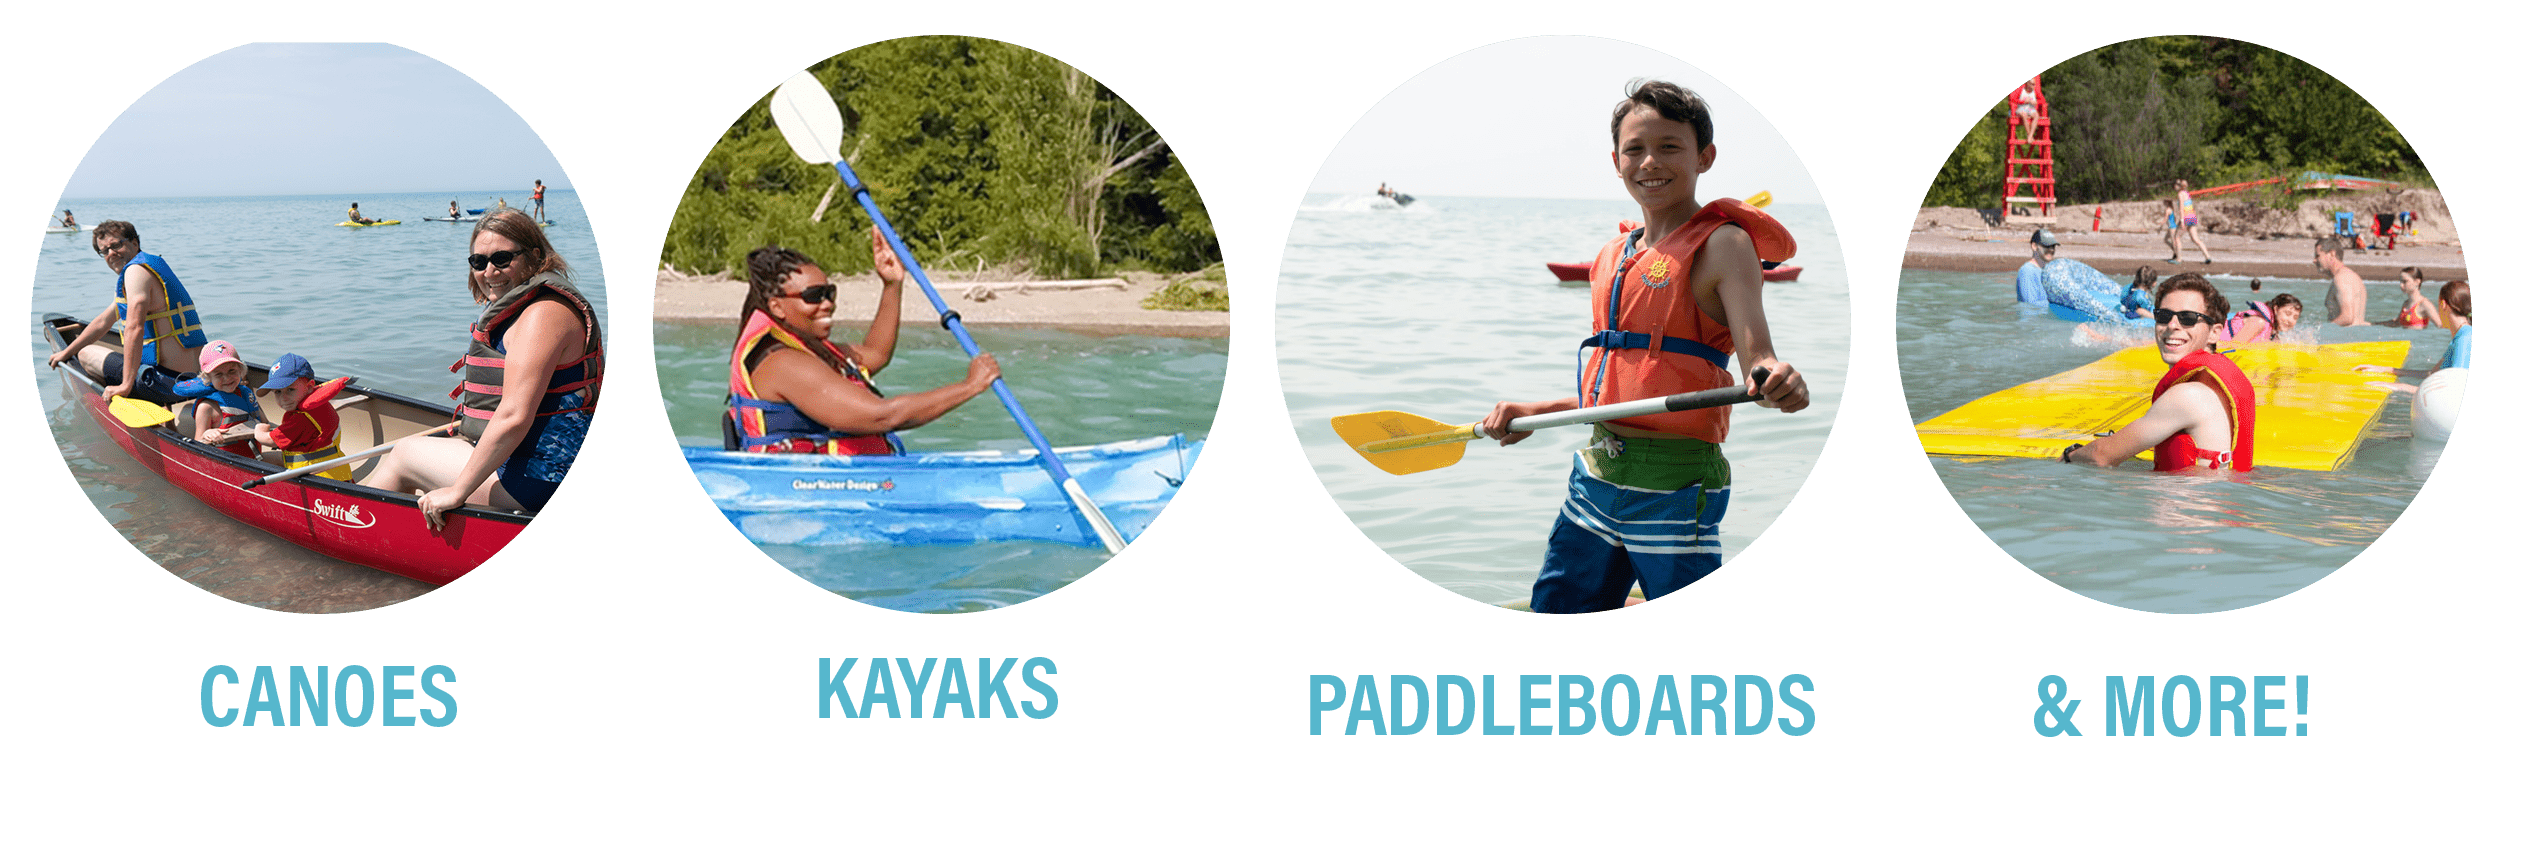 """Image of canoes, kayaks, paddleboard and the aquamat. """"Canoes, kayaks, paddleboards, and more!"""""""